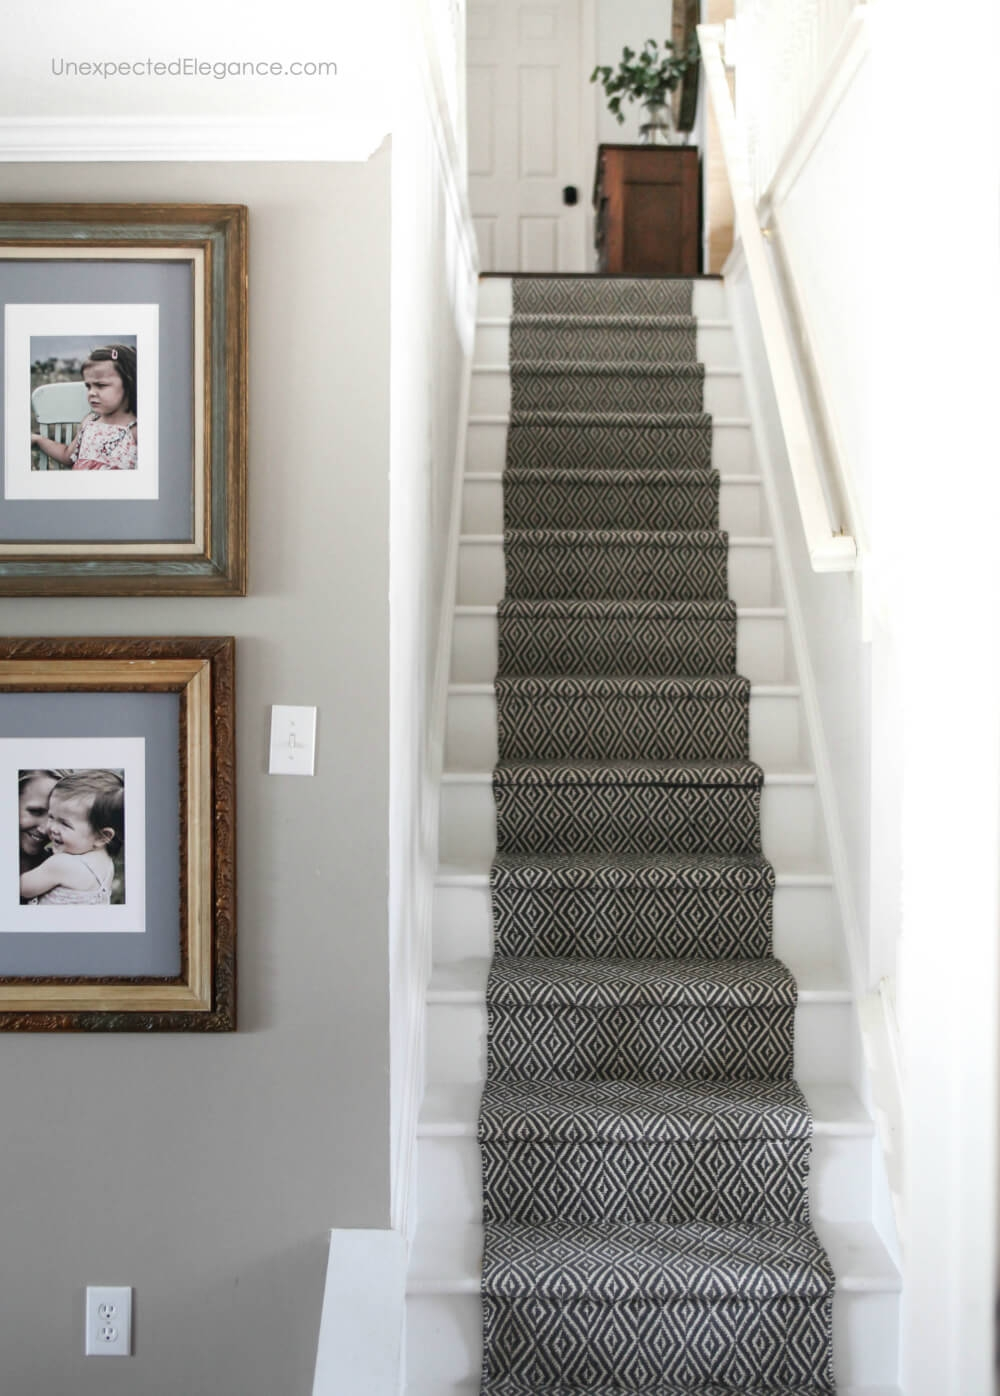 How To Replace Carpet With An Inexpensive Stair Runner For Around 100 | Stapling Carpet To Stairs | Electric Stapler | Flooring | Stair Tread | Landing | Stair Runner